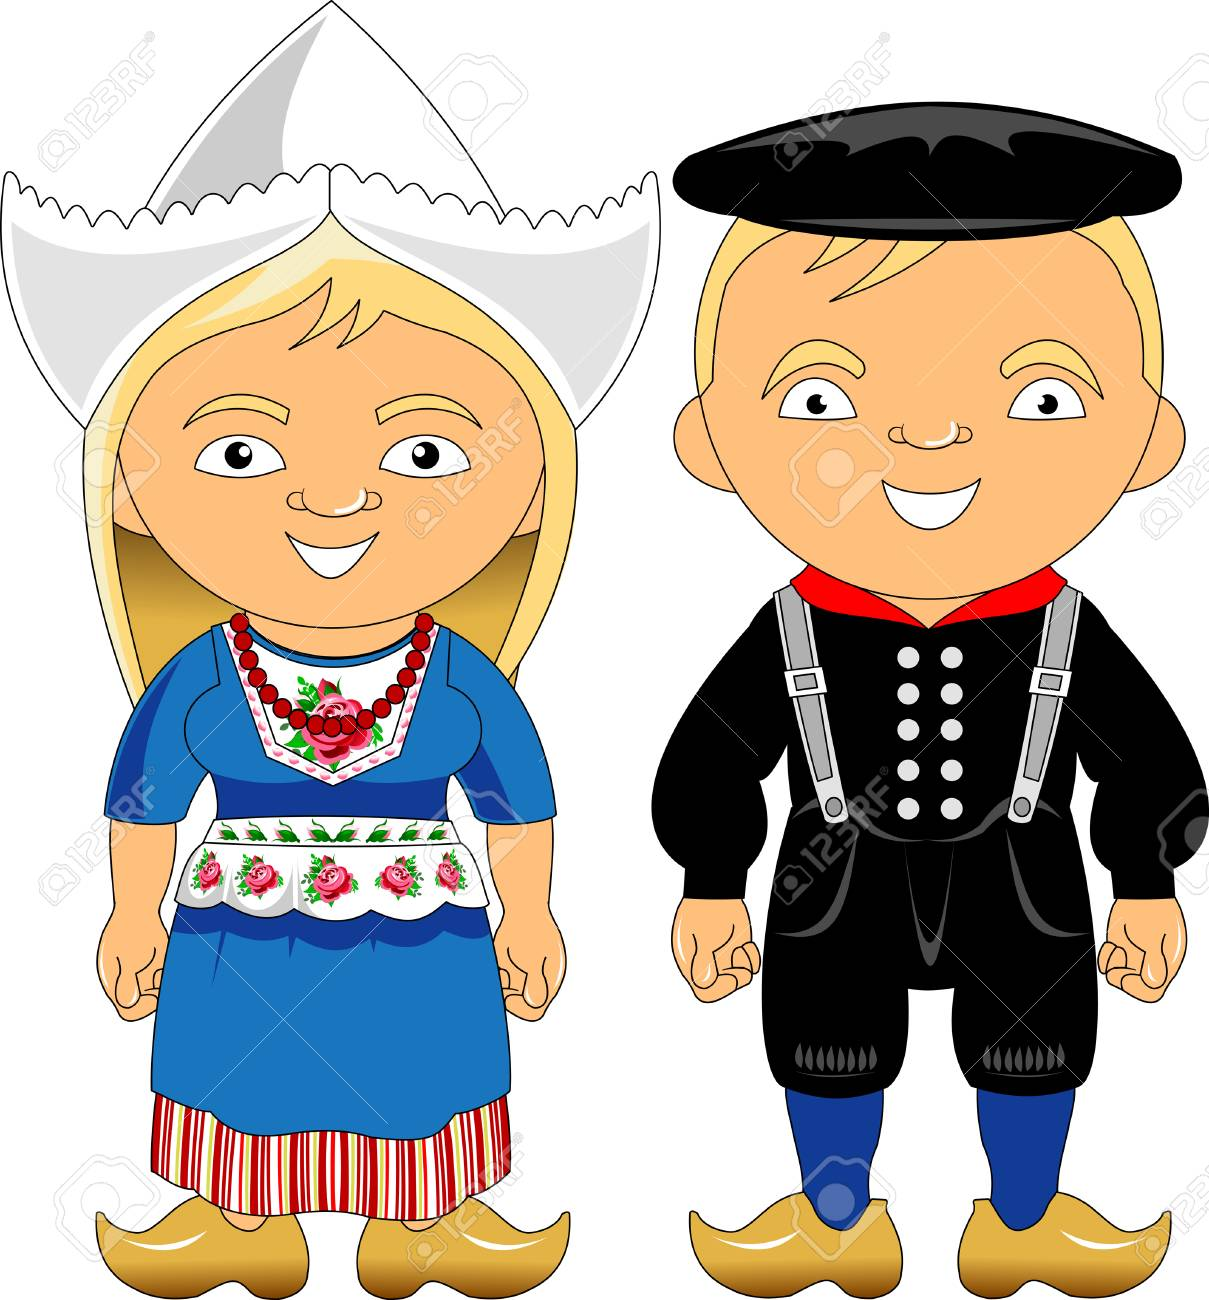 Man and woman in traditional costume, vector illustration - 116220343